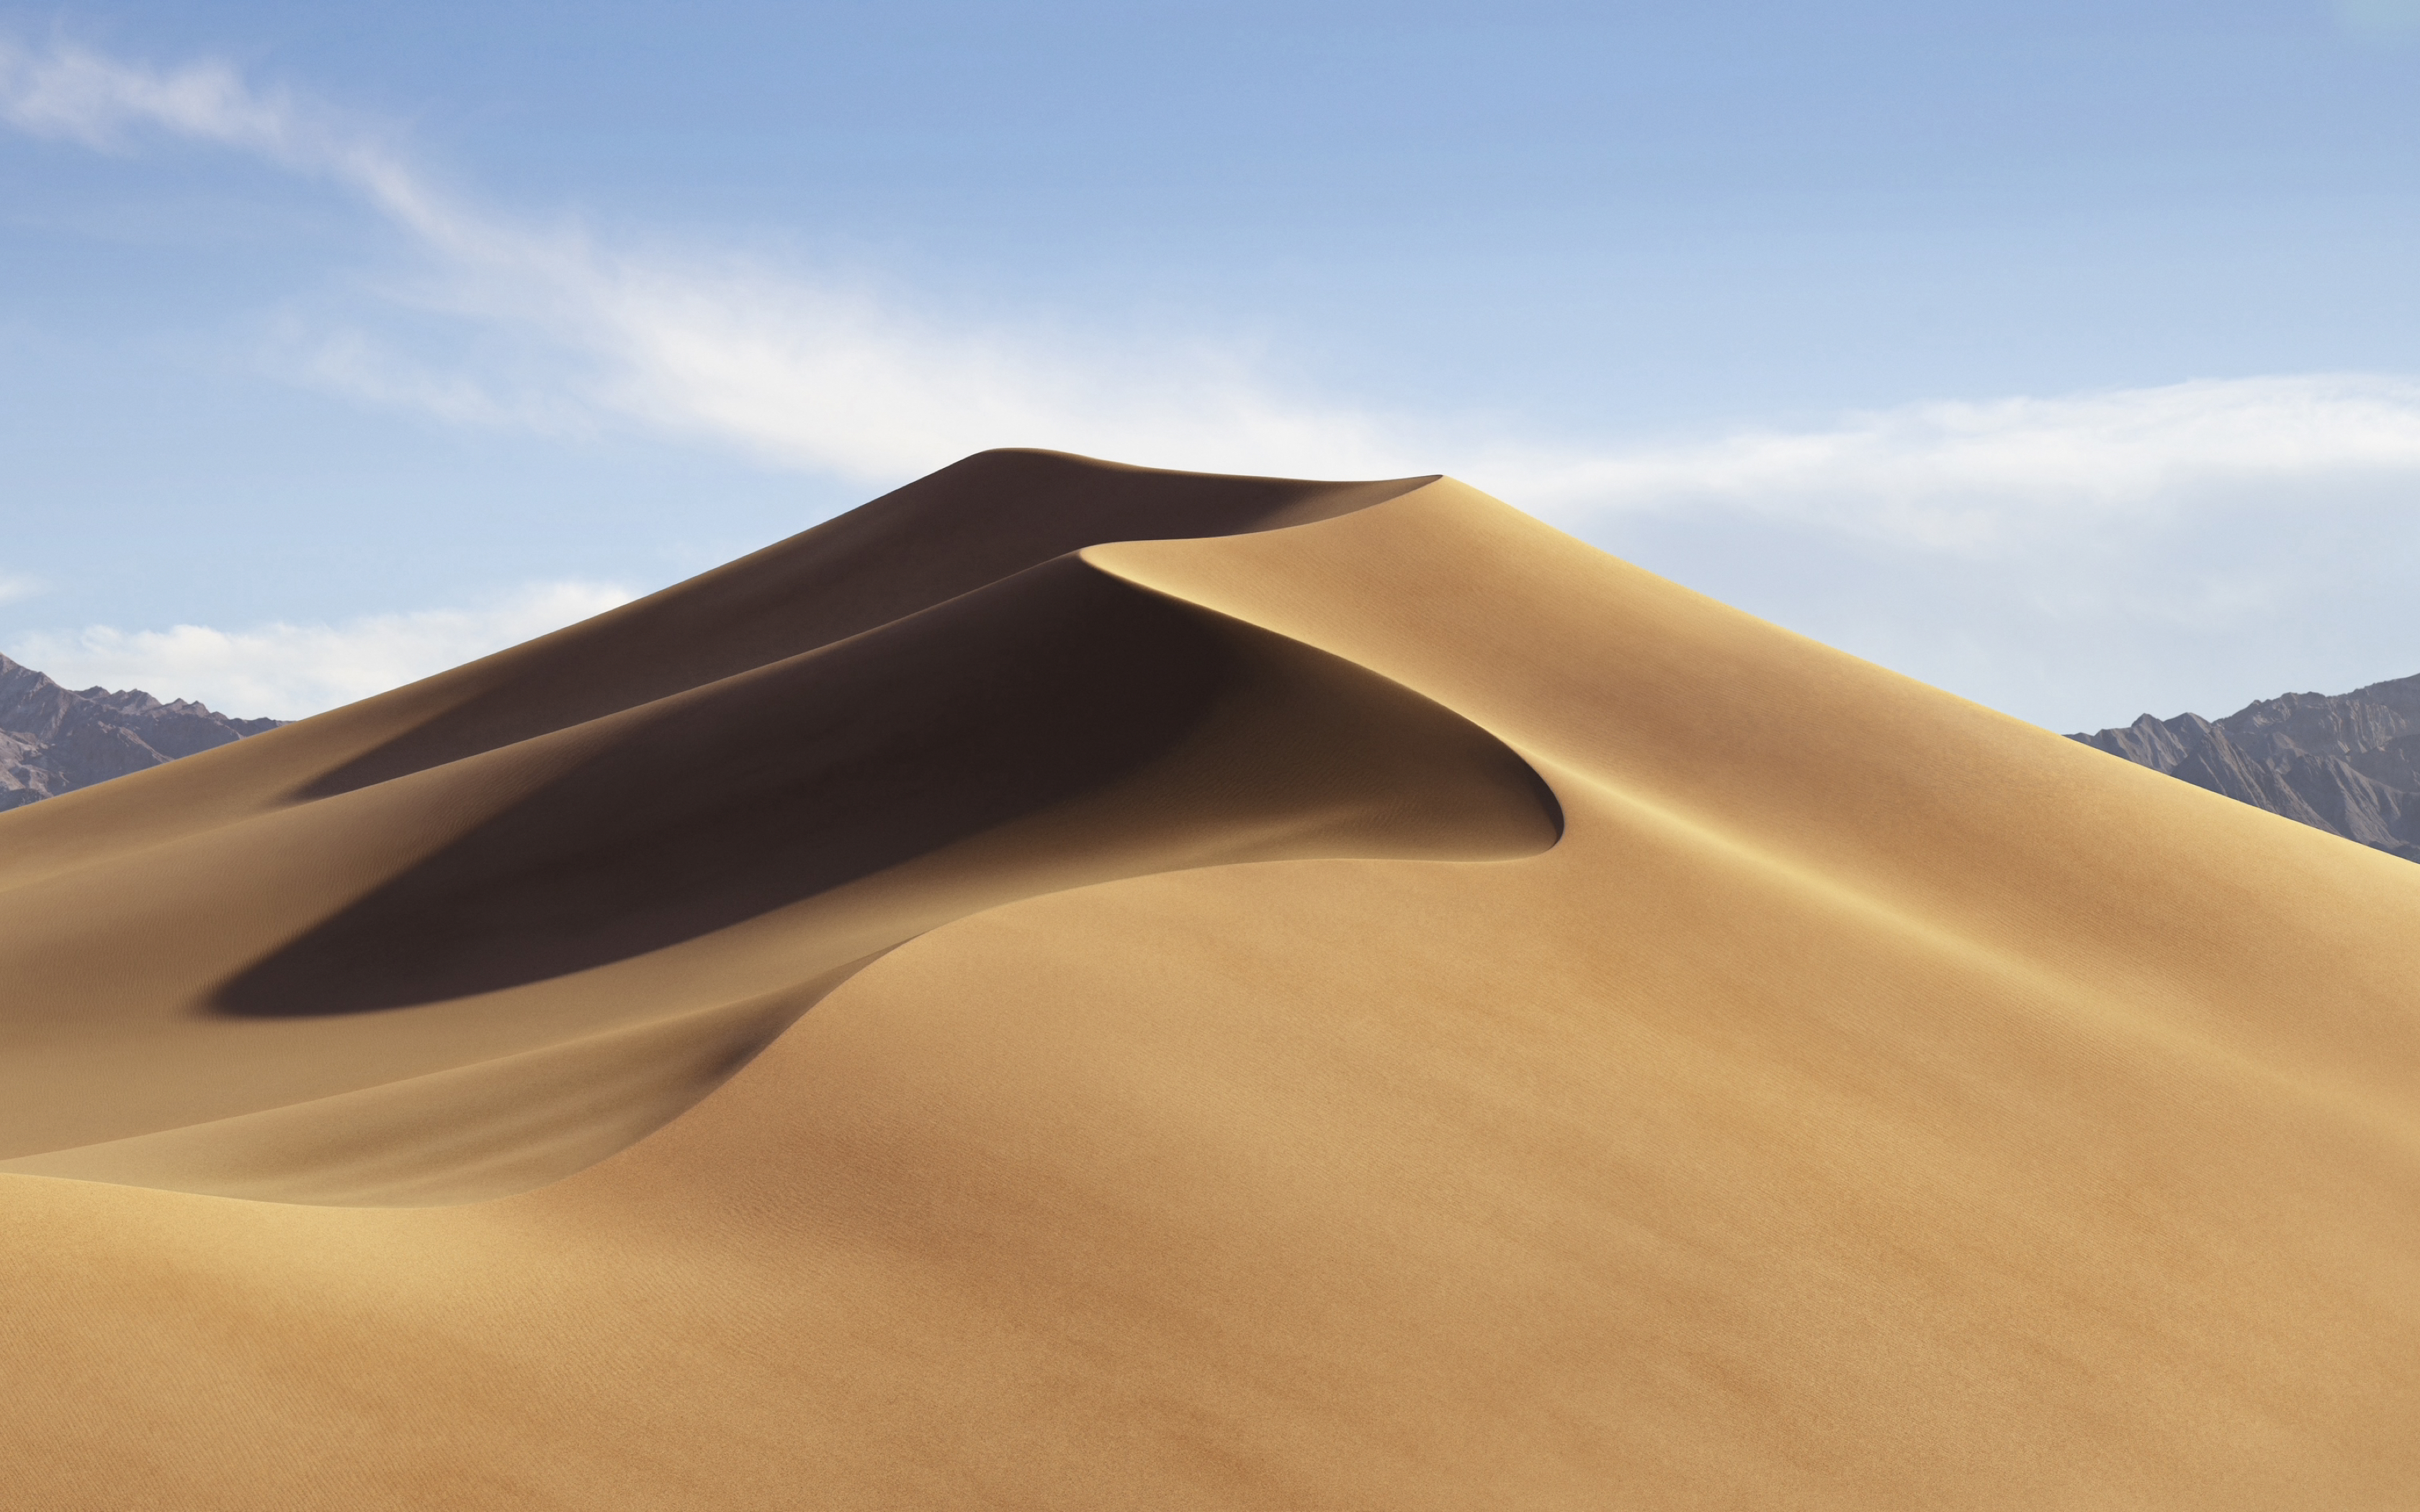 macOS Mojave Wallpaper Day